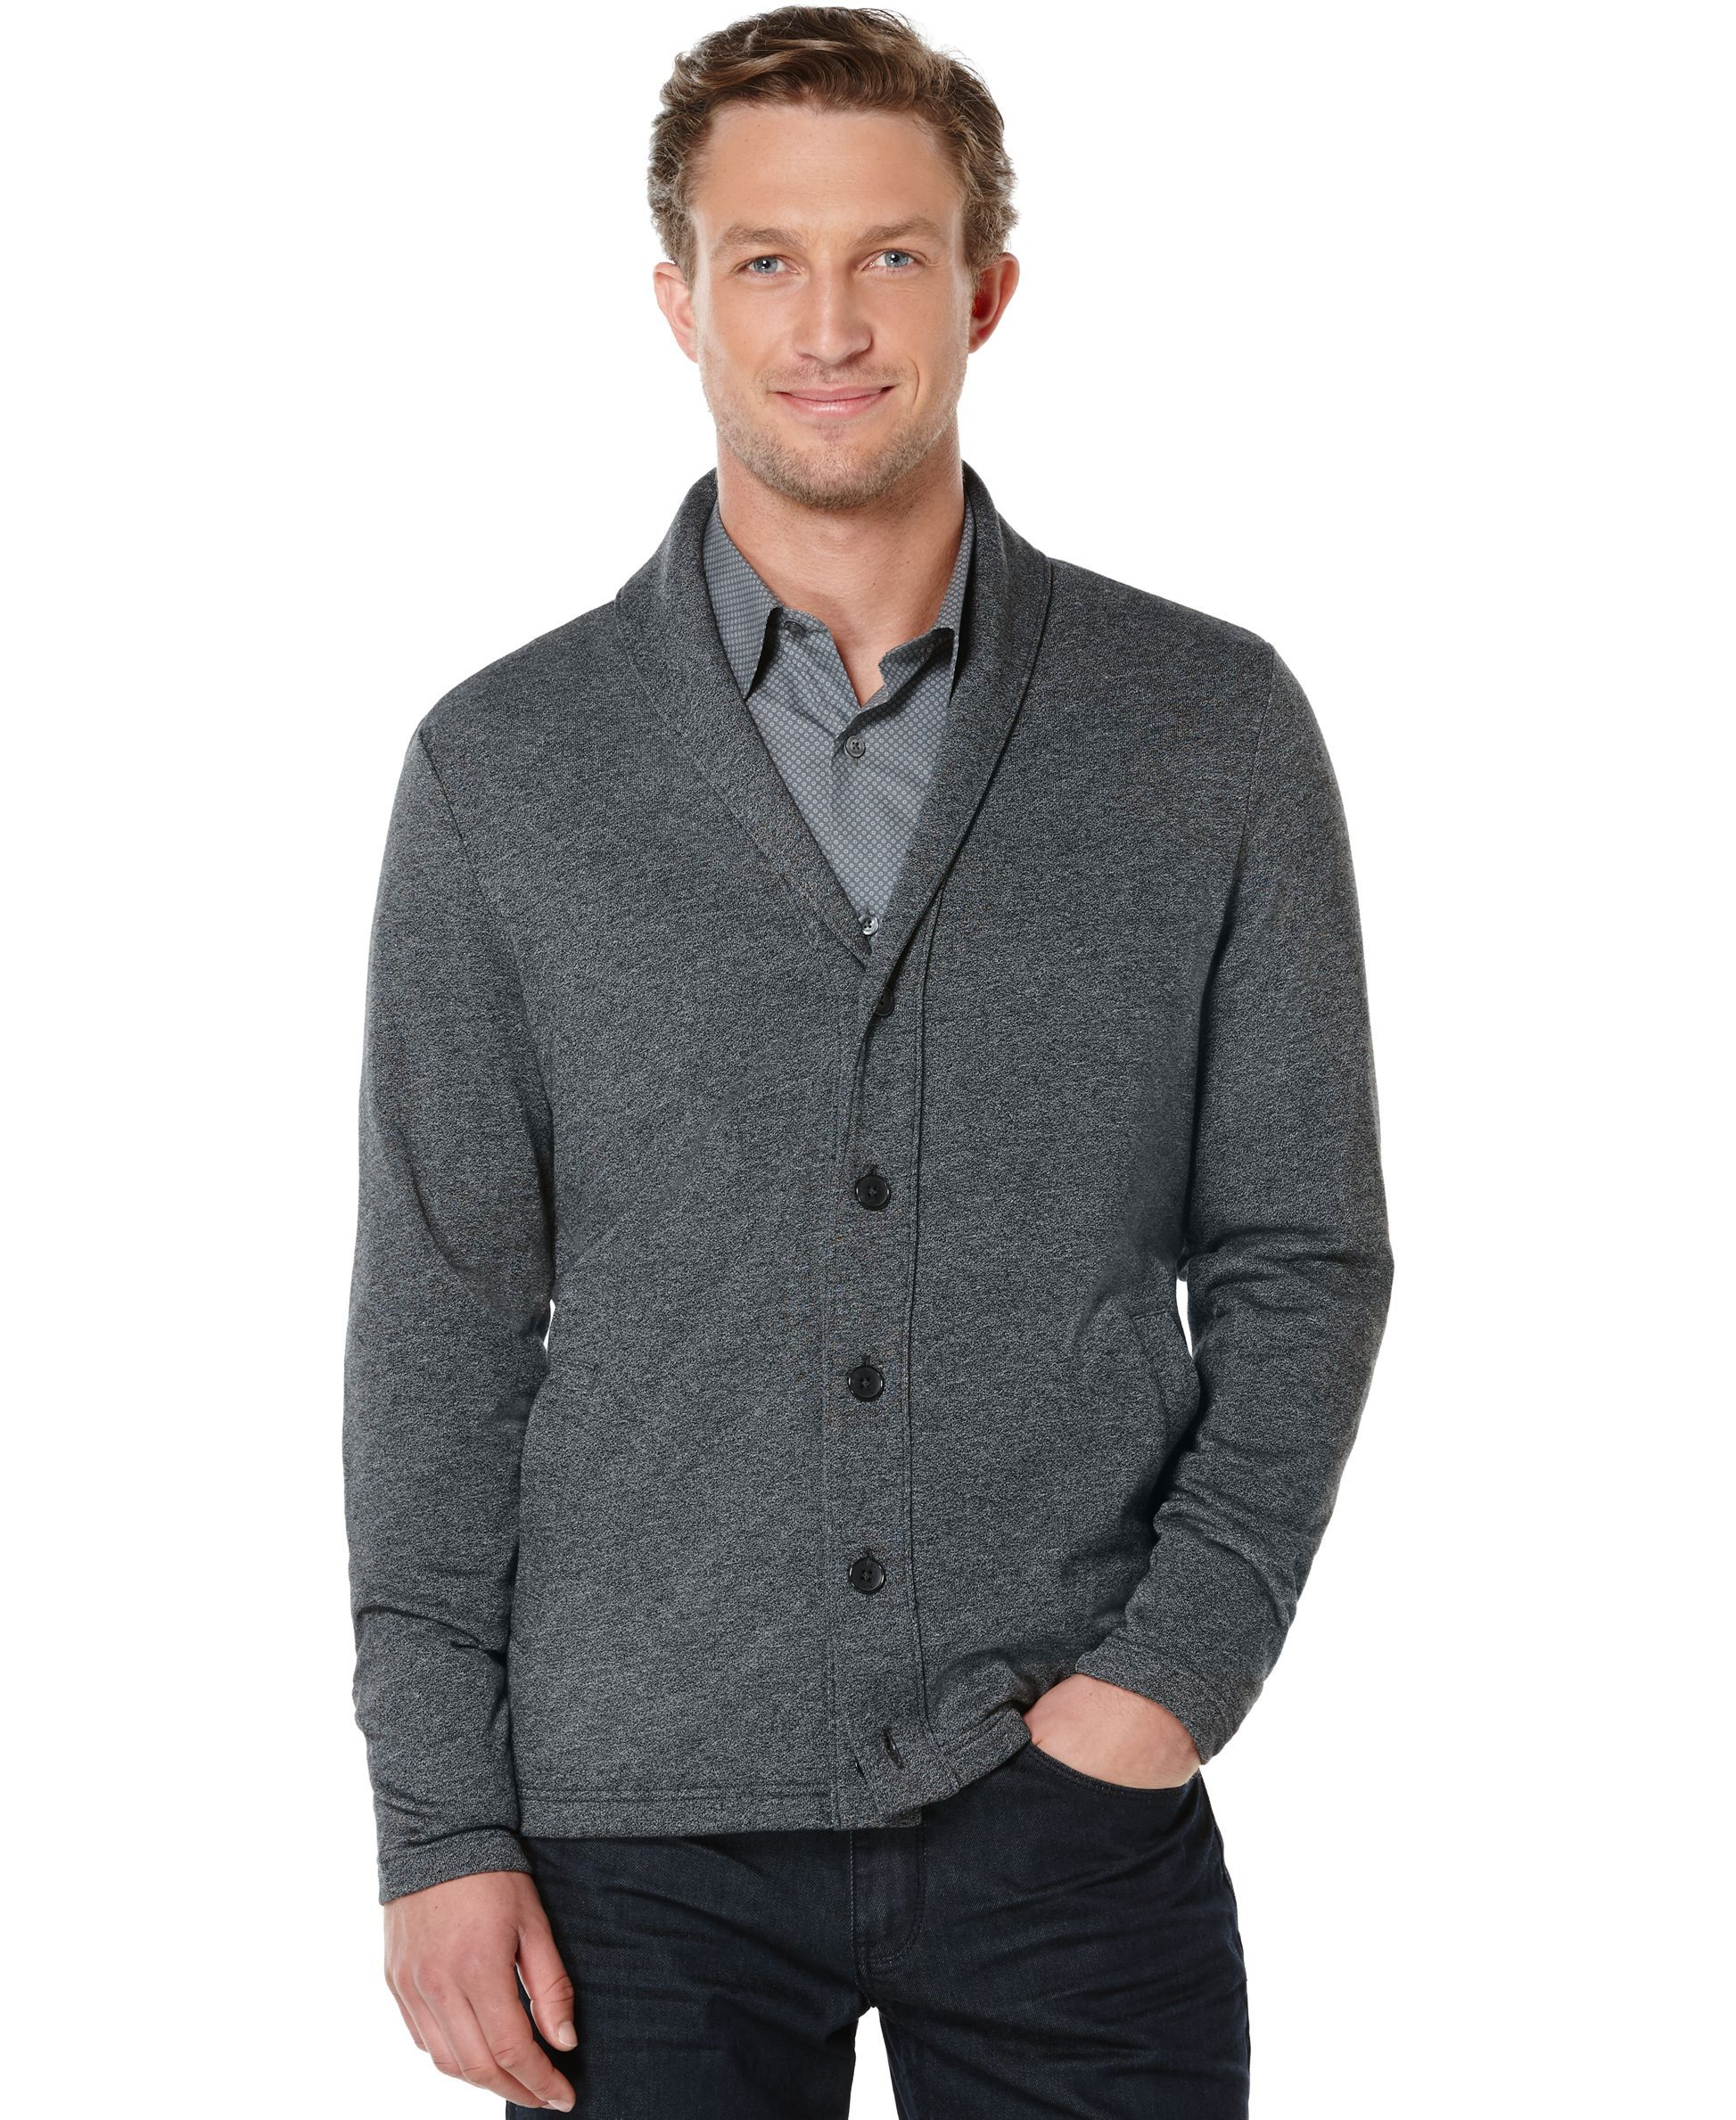 Perry Ellis Shawl Collar Button-Front Cardigan Sweater  363c8b4a3